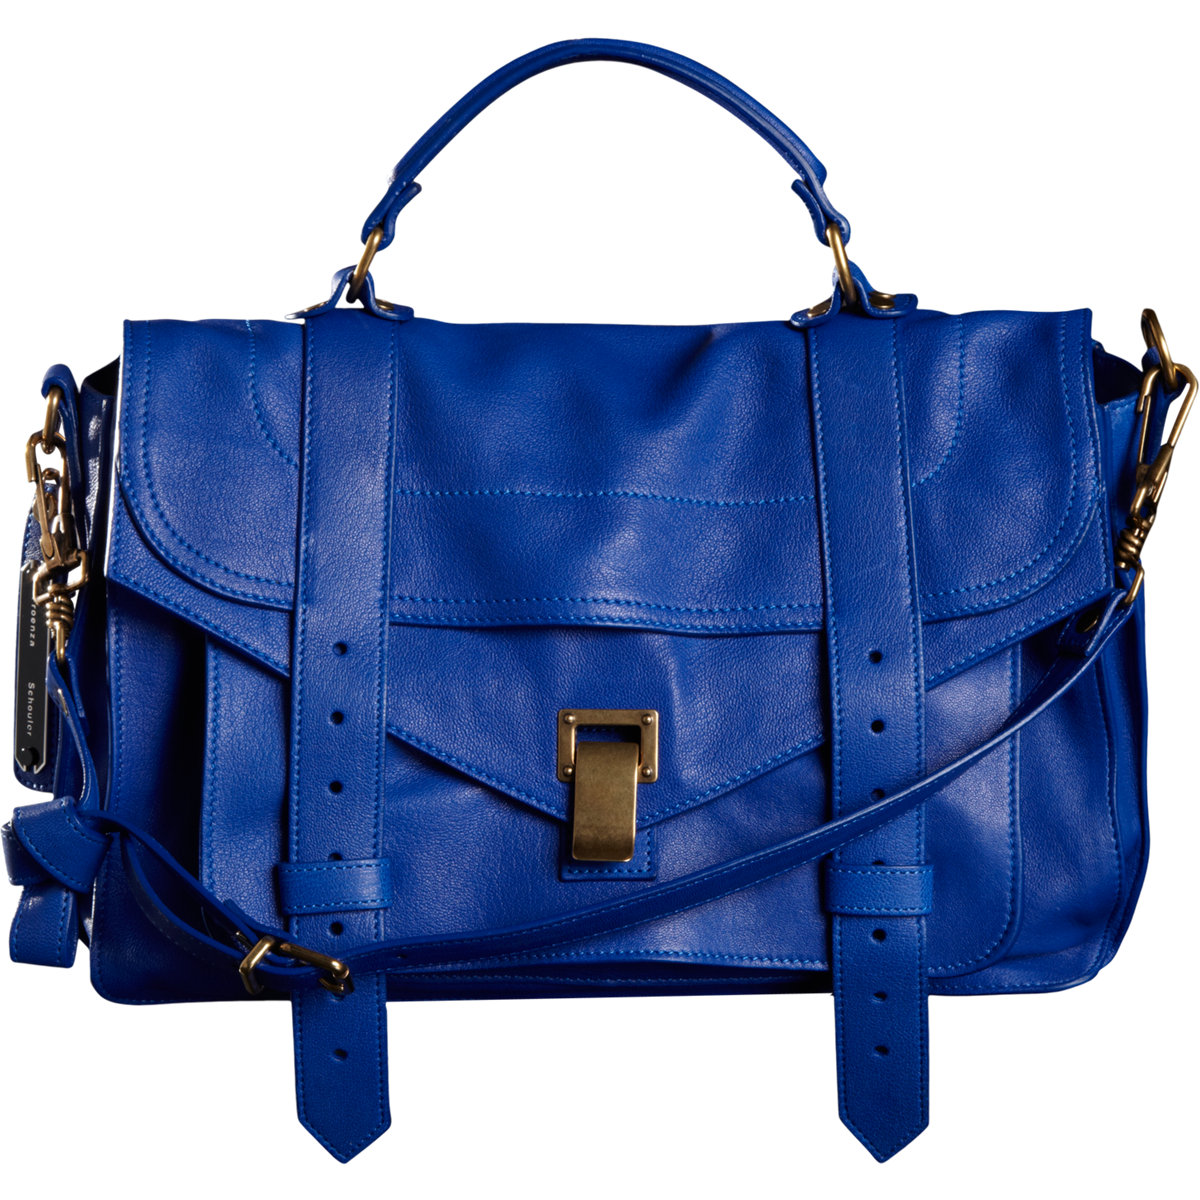 Cheap Price Buy Discount PS1+ Medium - Blue Proenza Schouler Cheap Comfortable Outlet Real Good Selling For Sale Free Shipping Latest EJnHDiS2